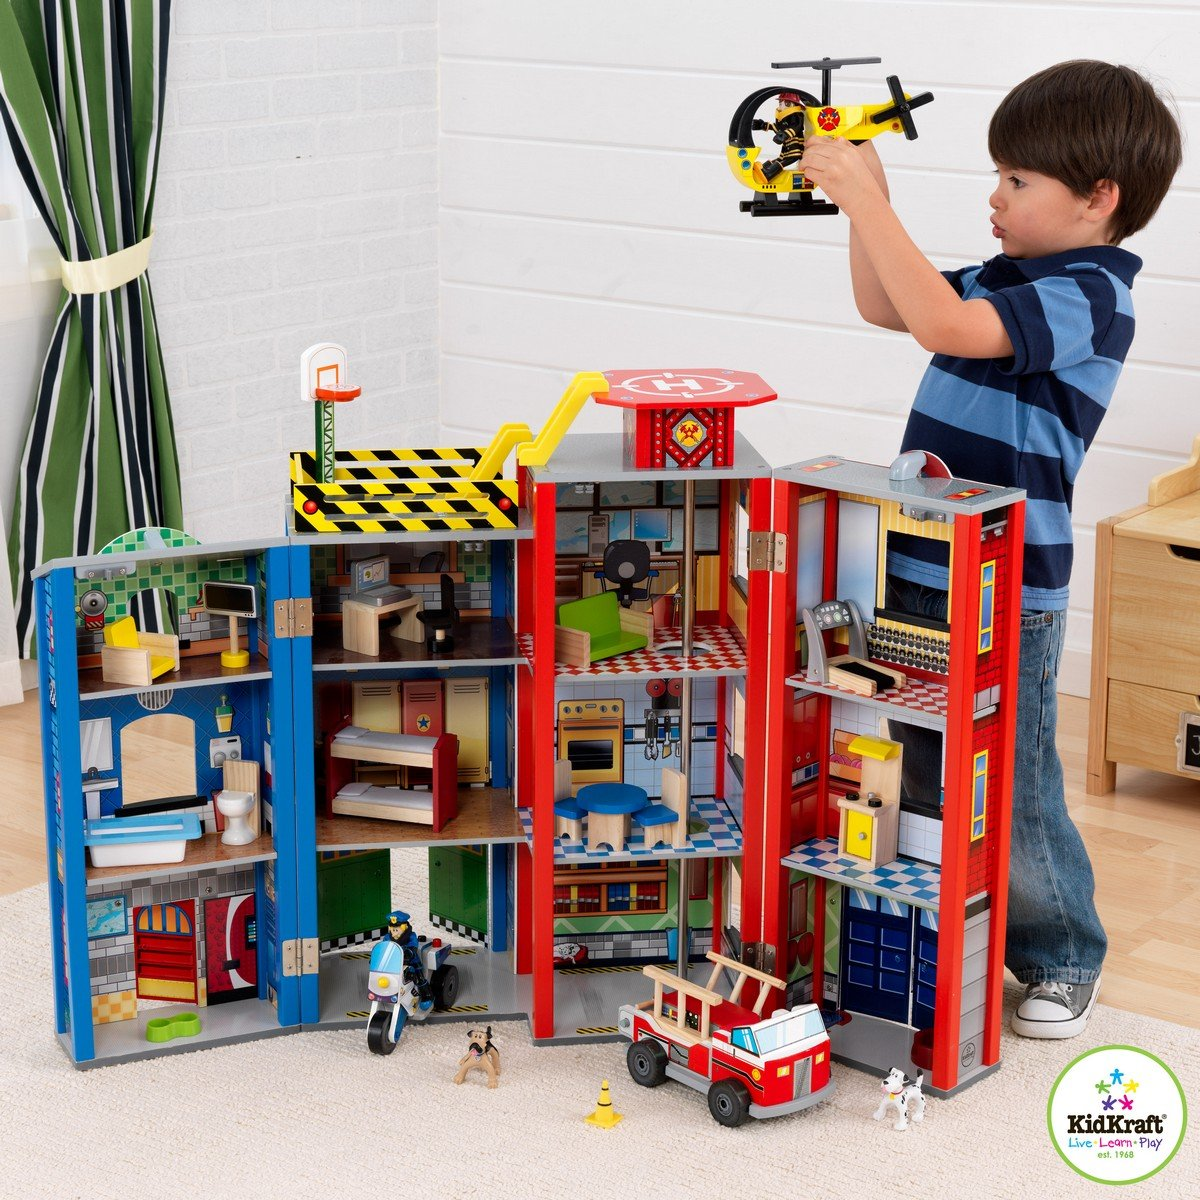 Everyday Heroes Play Set 63239 by KidKraft